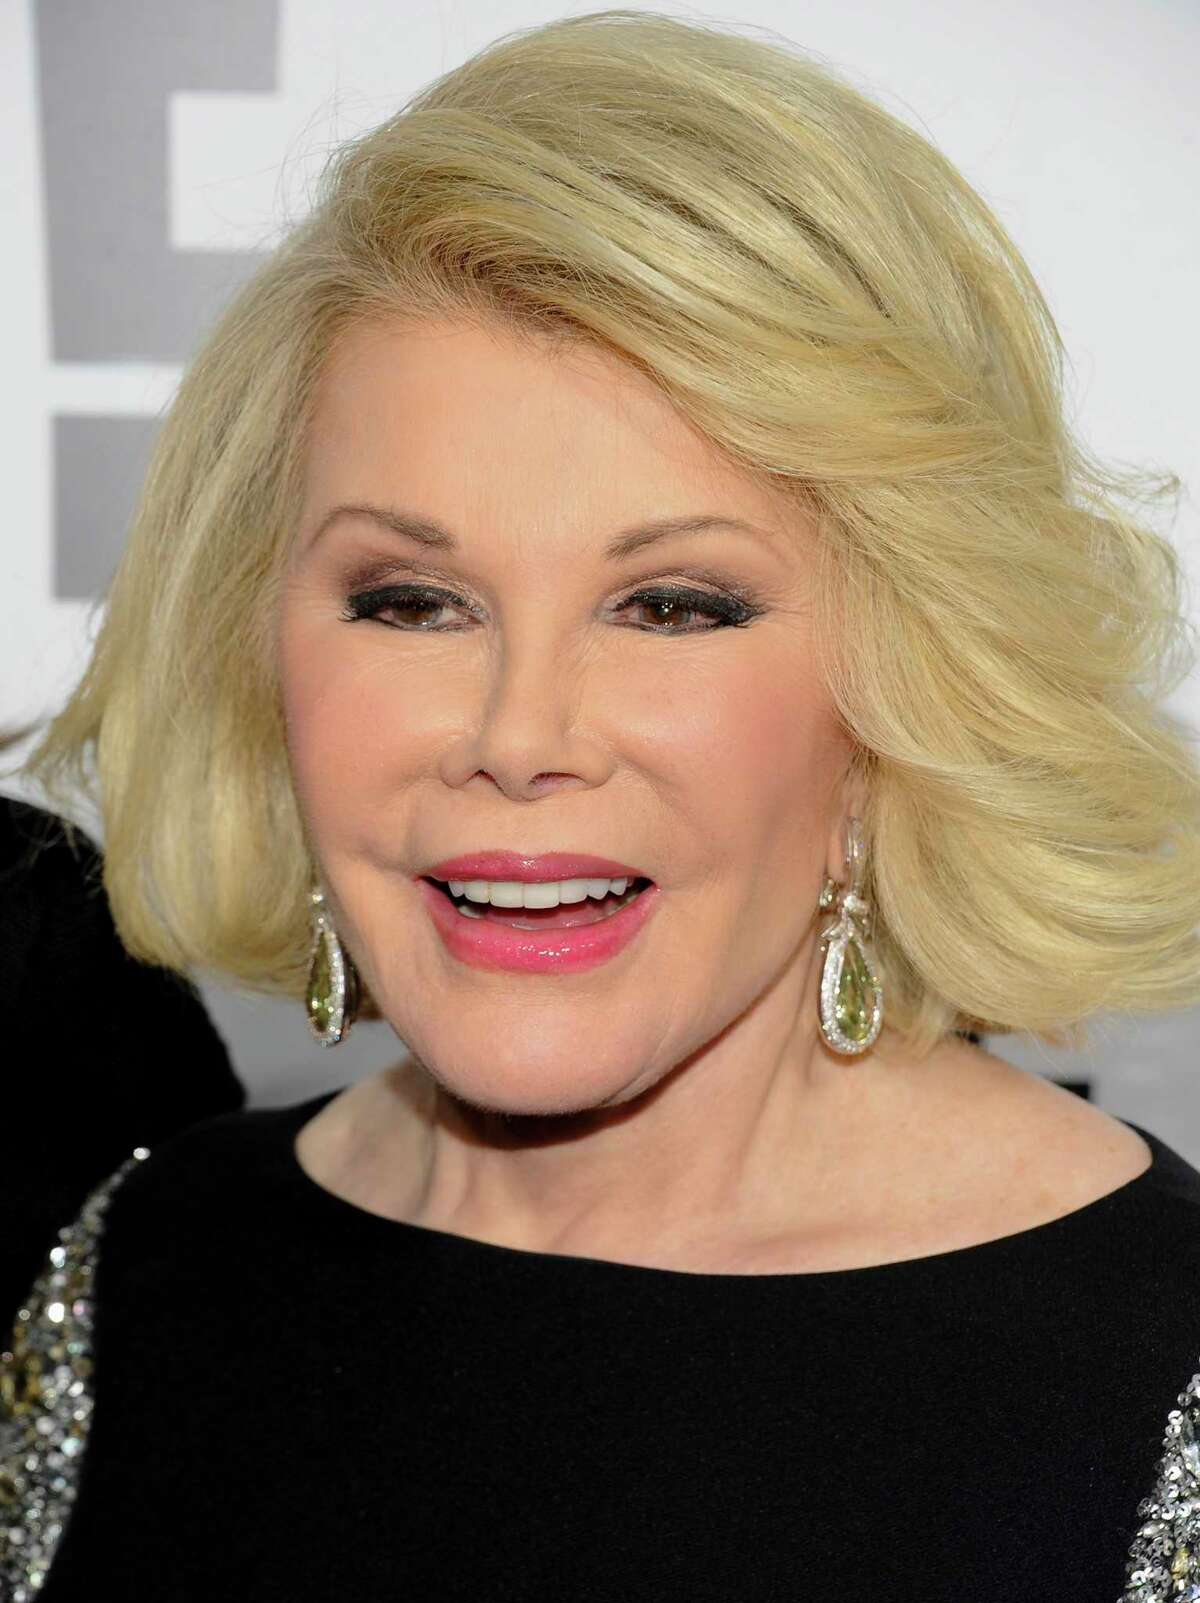 FILE - In this April 30, 2012 file photo, Joan Rivers attends an E! Network event in New York.